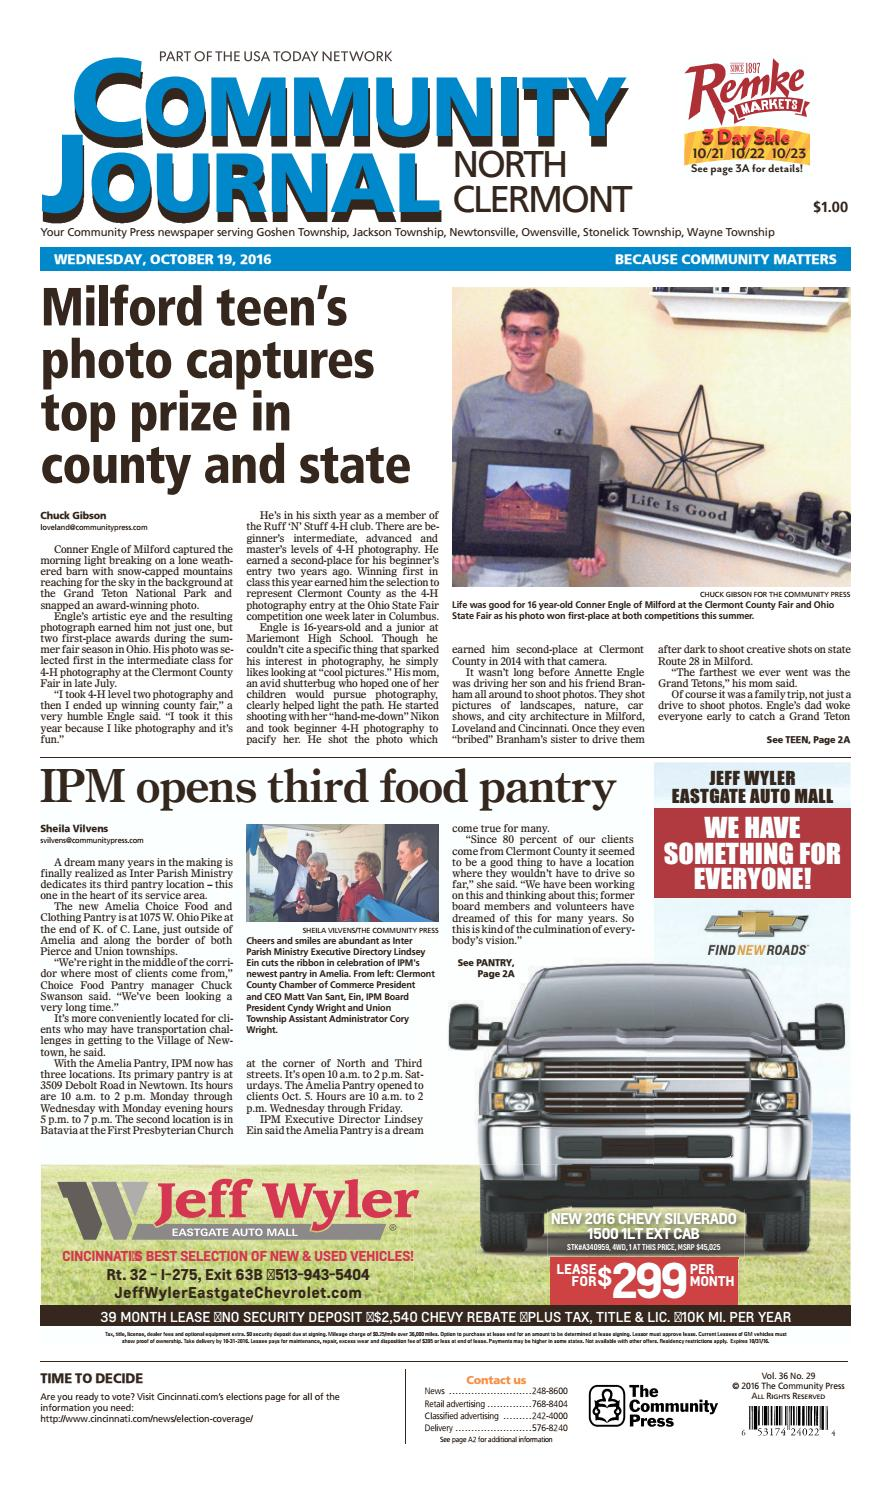 Comm journal n clermont 101916 by Enquirer Media - issuu